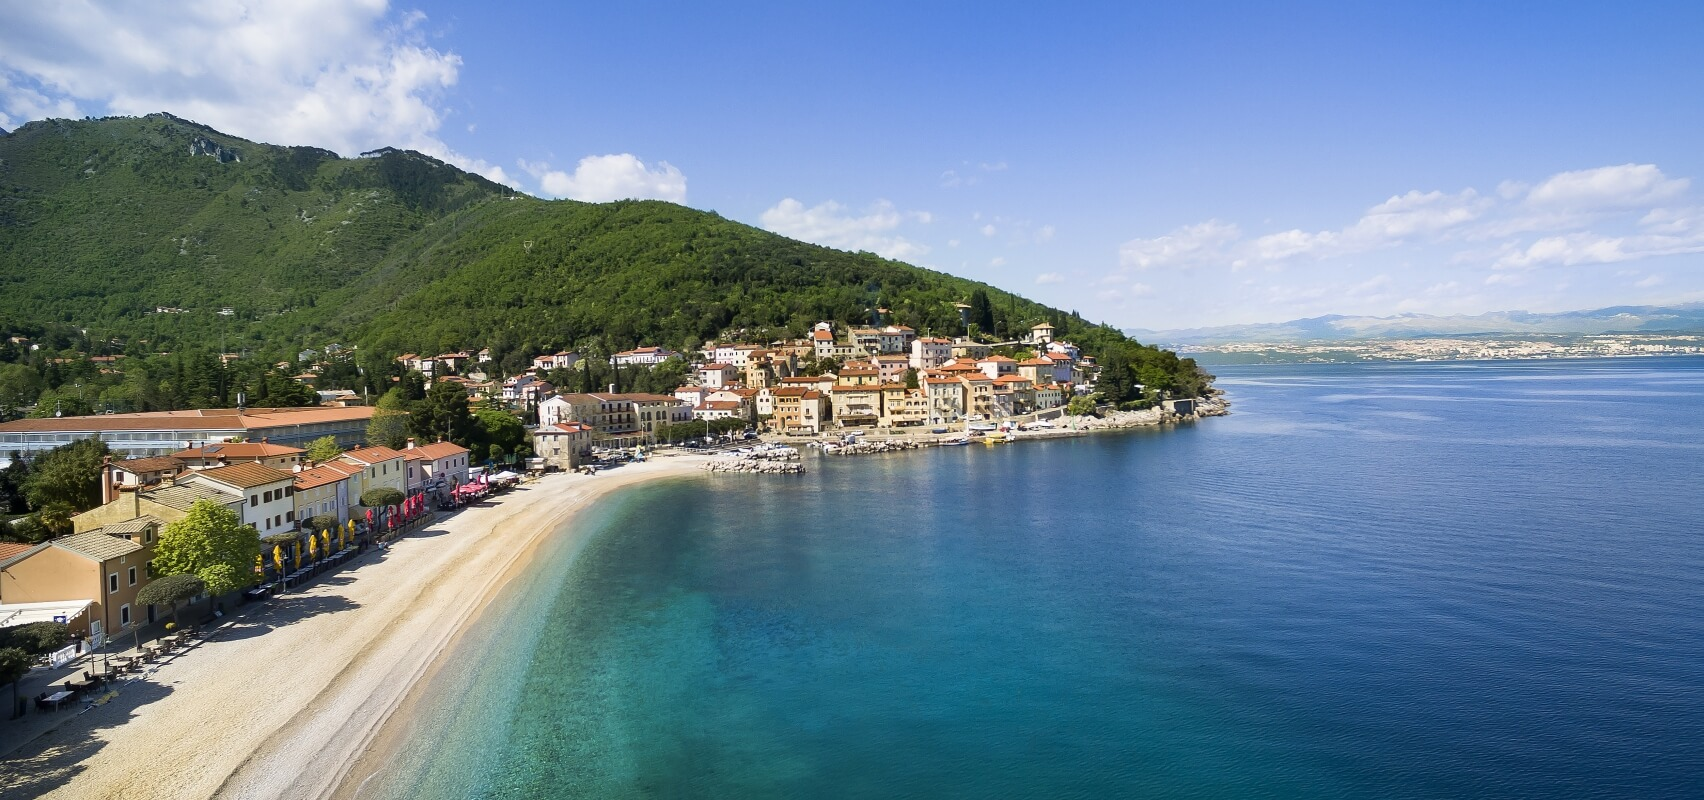 Opatija In Croatia The Pearl Of The Adriatic